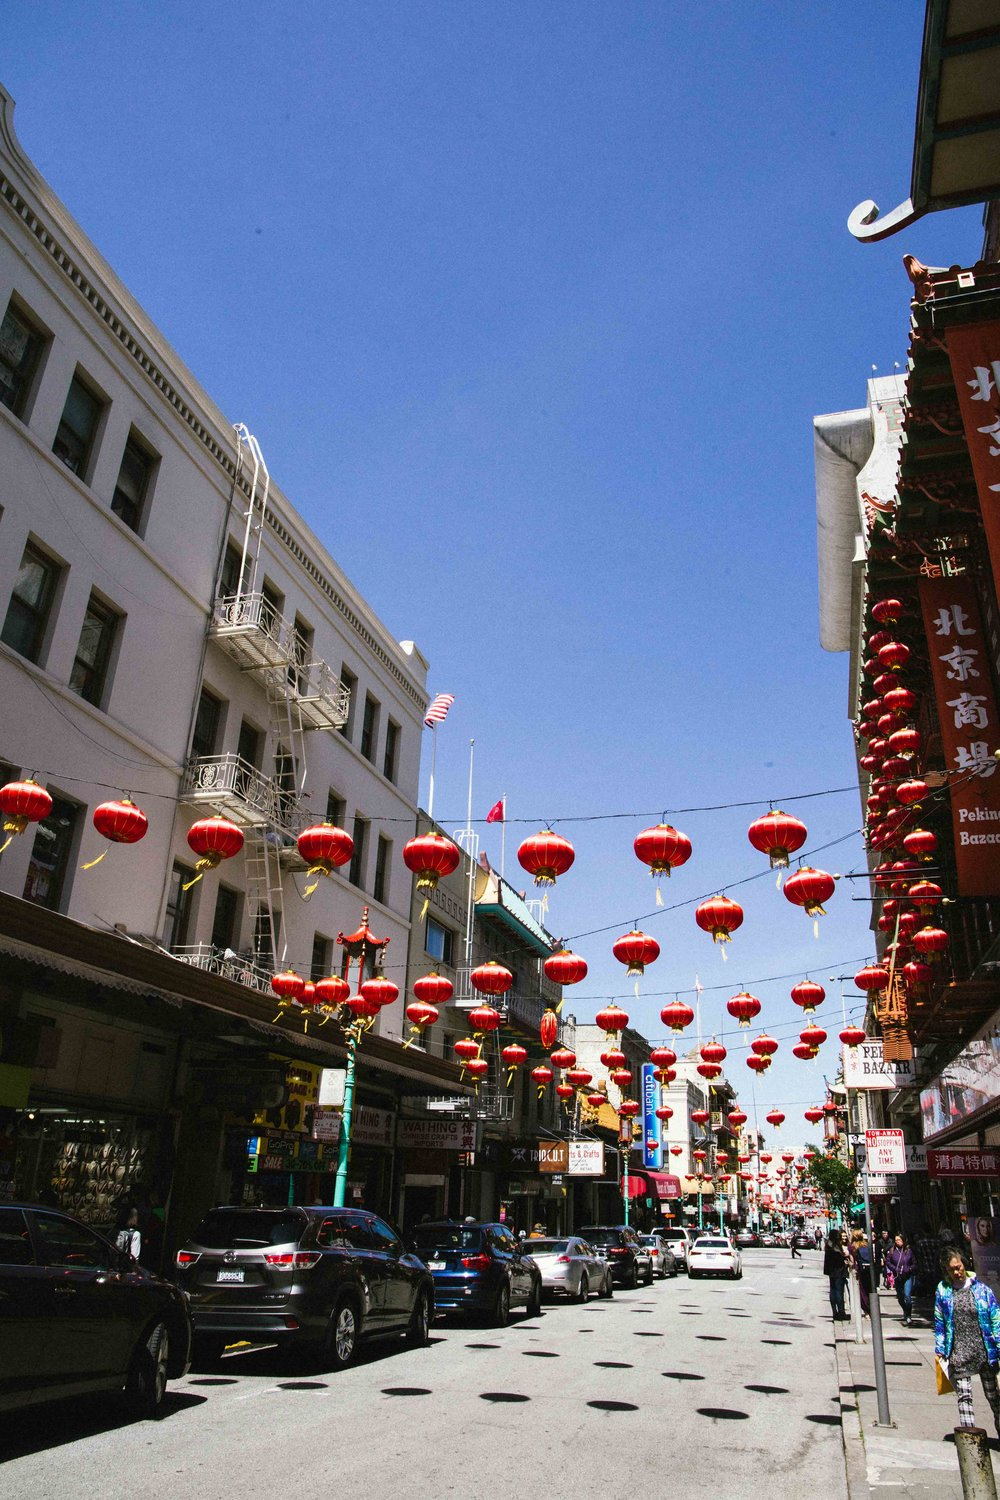 Chinatown in San Francisco. Photo: Marine Raynard